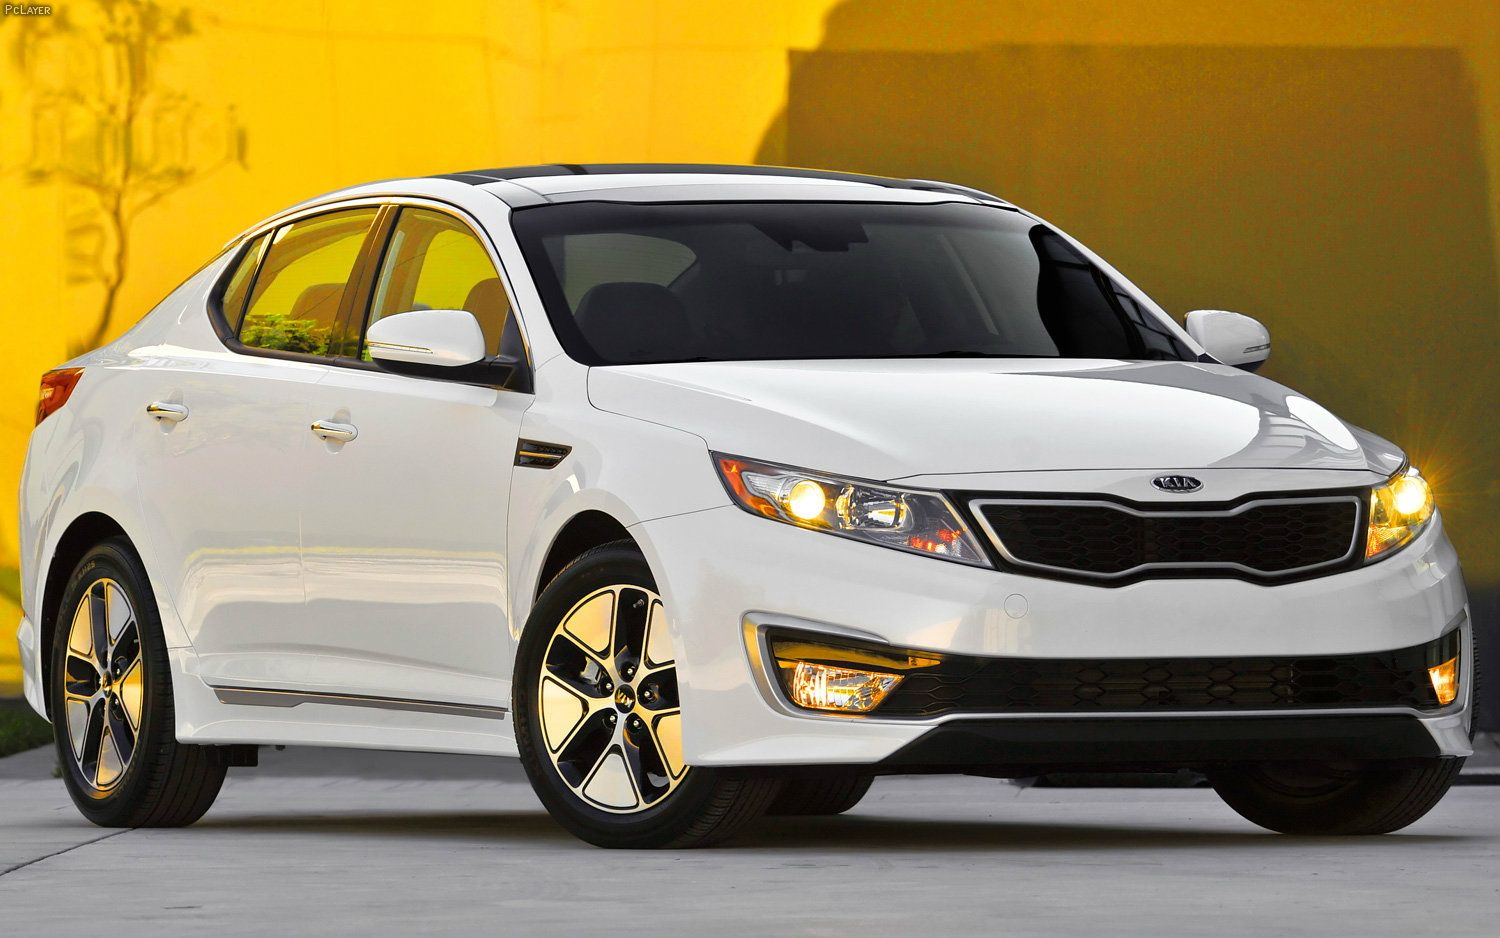 Kia Optima Hybrid Hybrid Car Kia Optima Kia